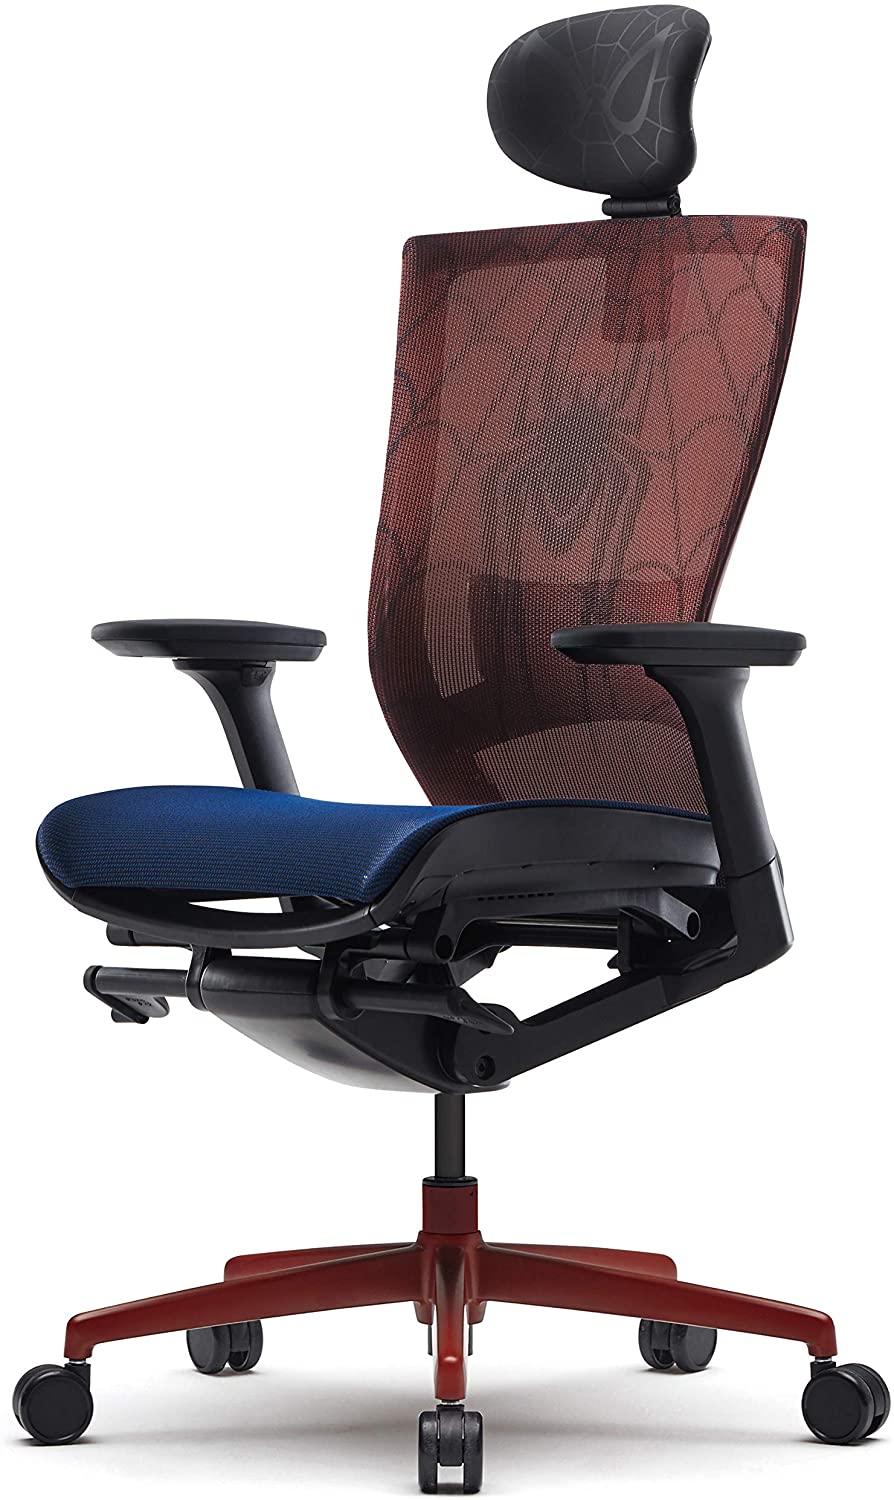 Spiderman Gaming office chair gift idea for spiderman fans